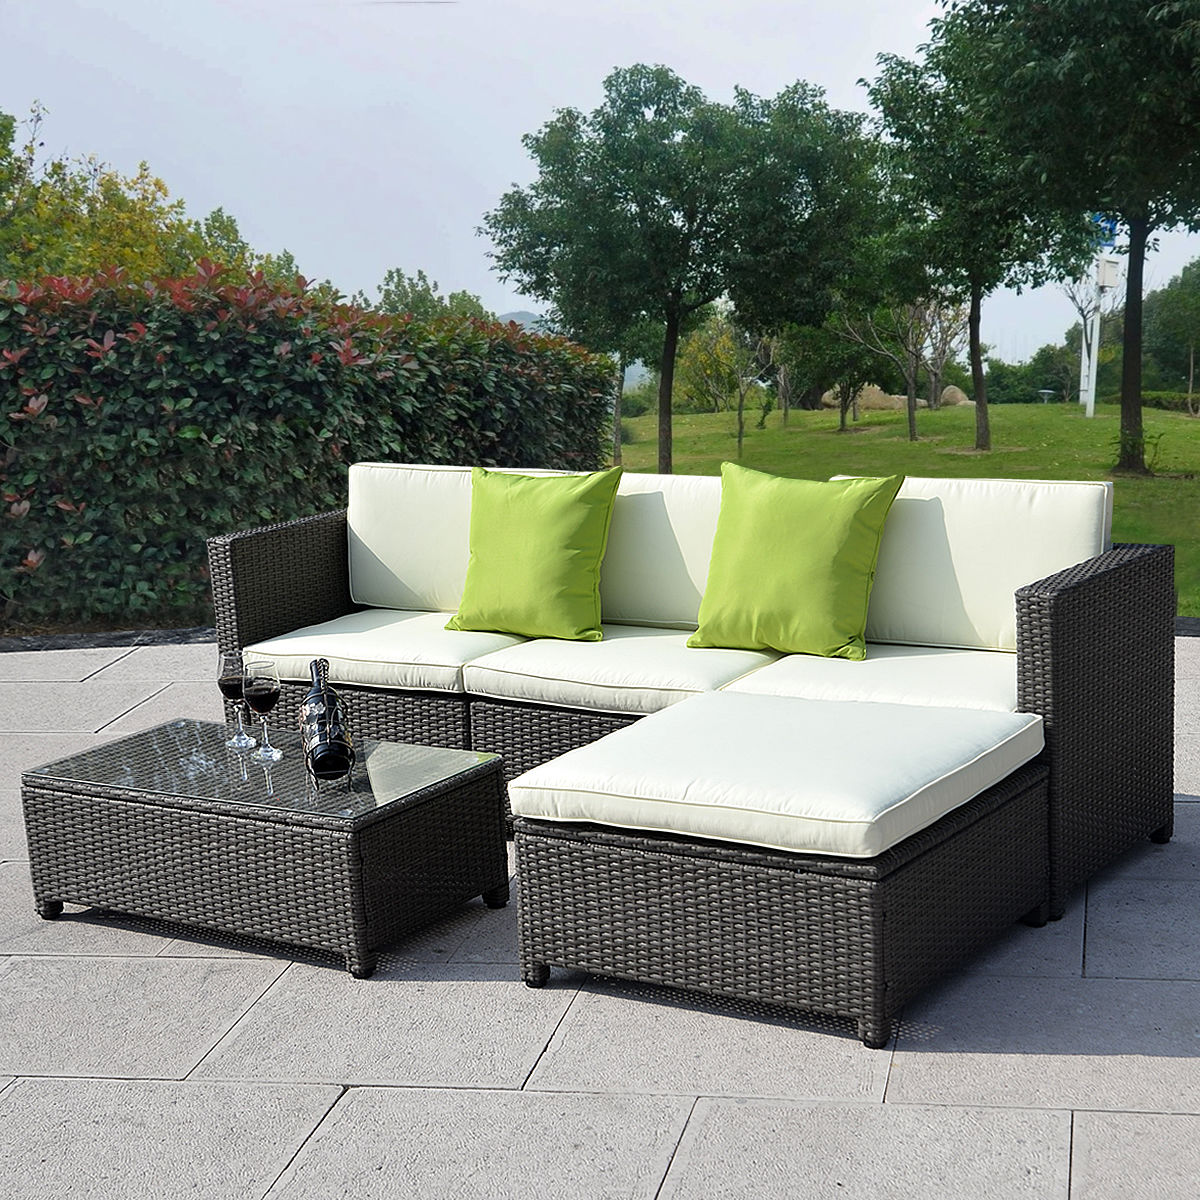 Outdoor patio wicker sofa set 5pc pe rattan for Outdoor patio couch set